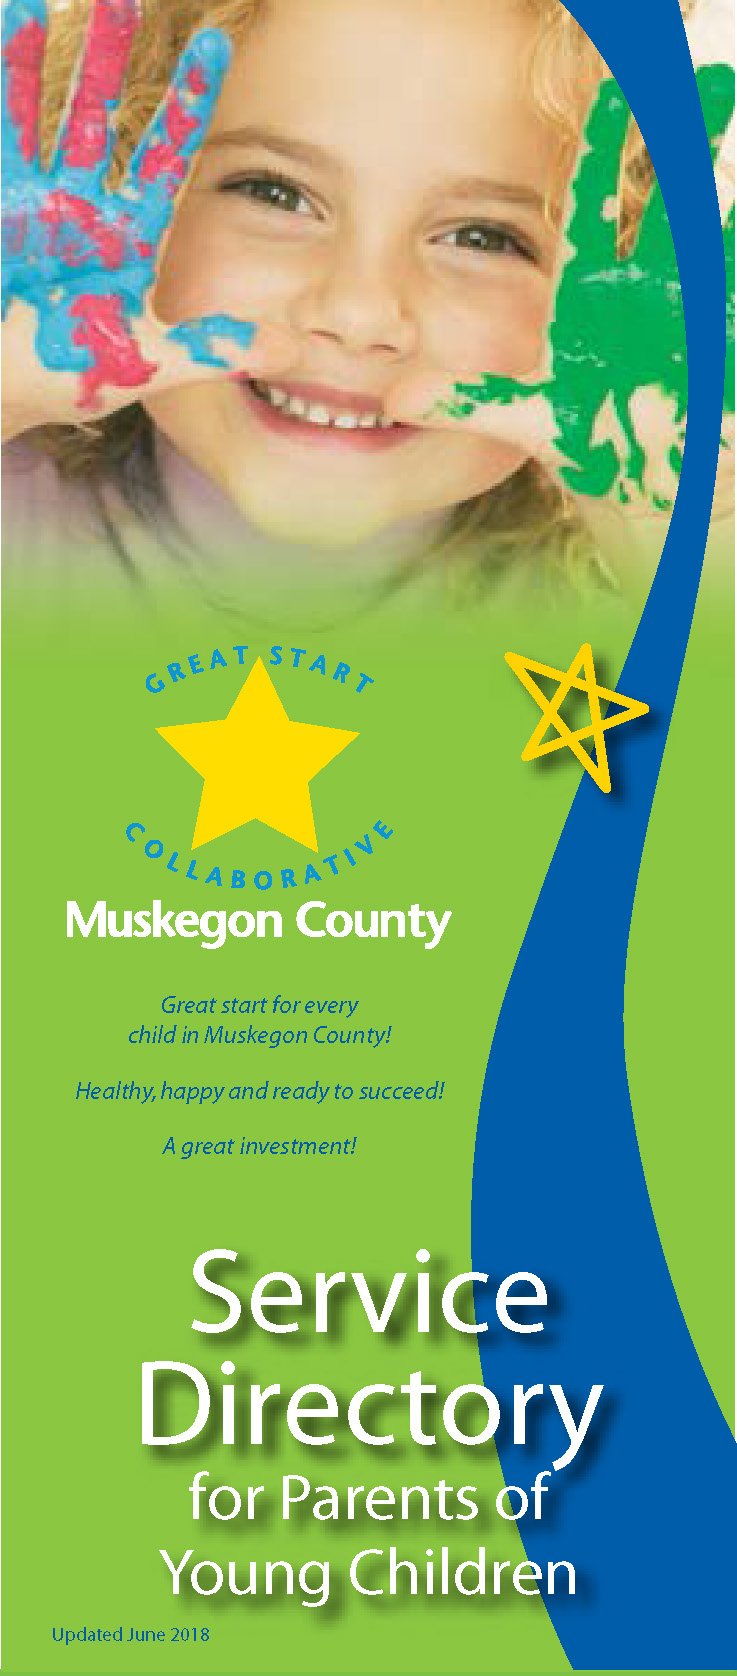 Young child.  Great Start of Muskegon County. Service Directory for Families with Young Children.